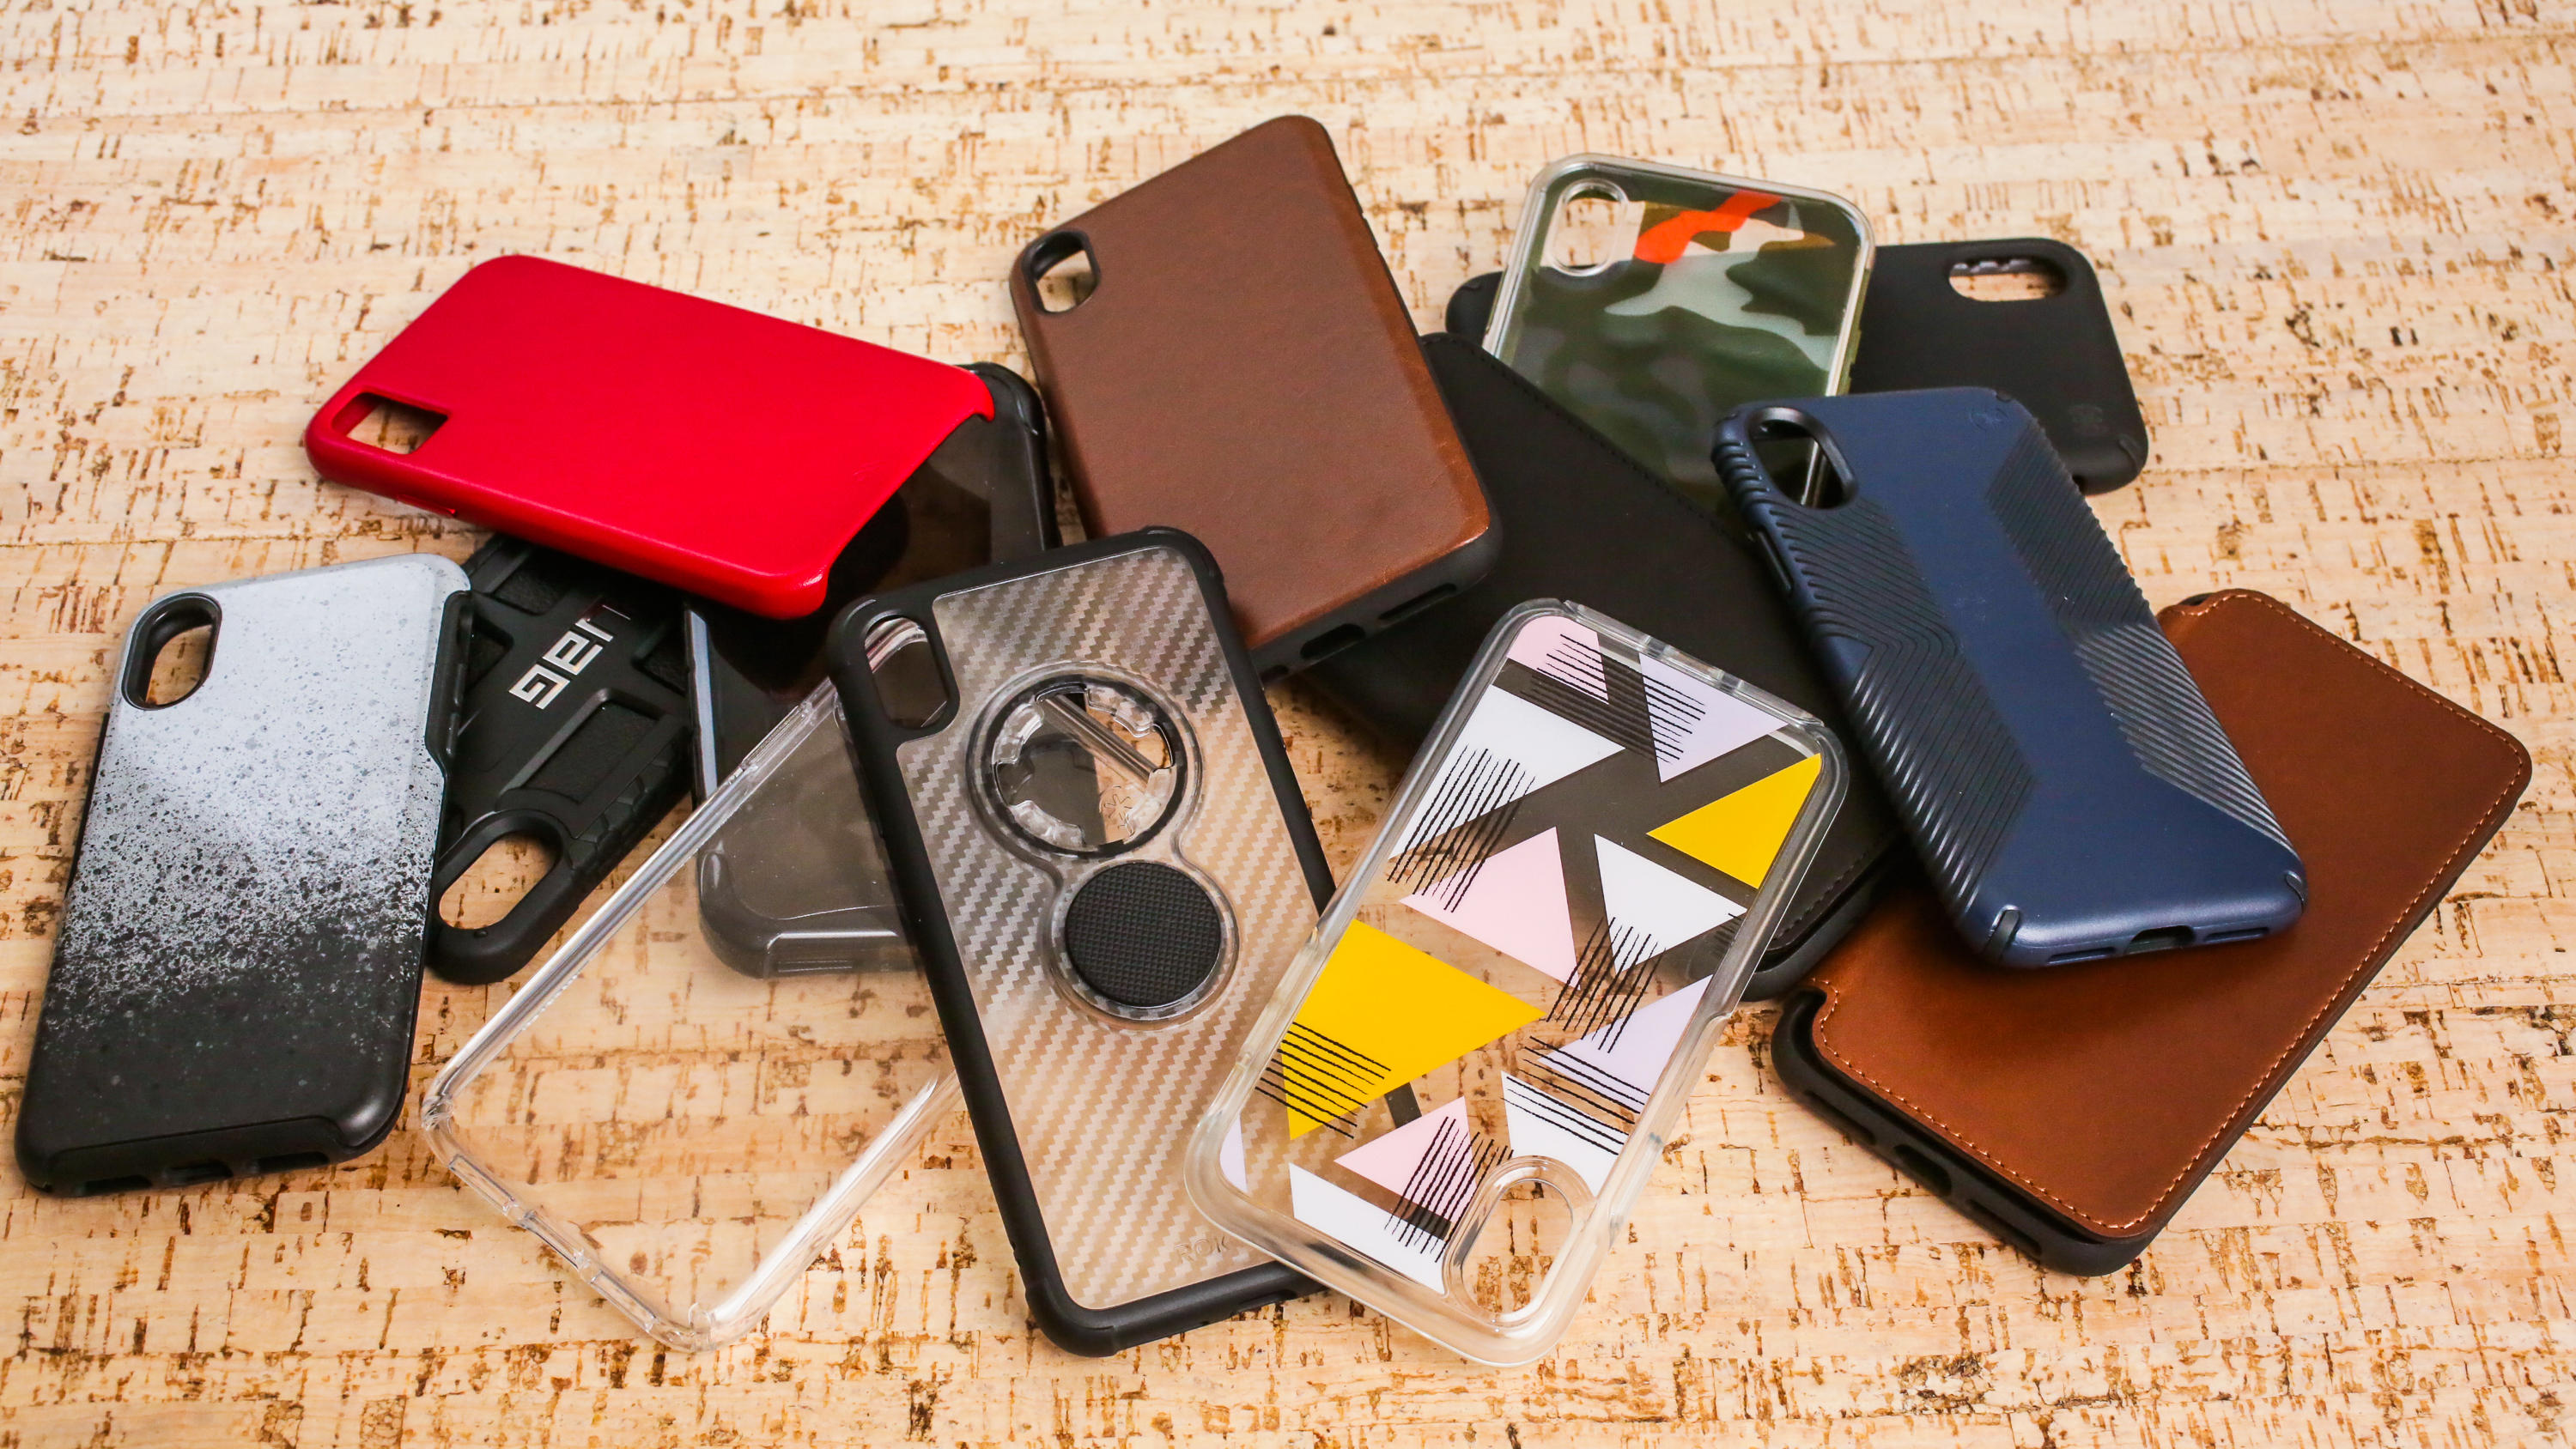 Genuine Leather iPhone XXS Full Protective Back Cover Case Personalization Phone Case Shiny Brown iPhone XXS Ultra Slim Phone Case